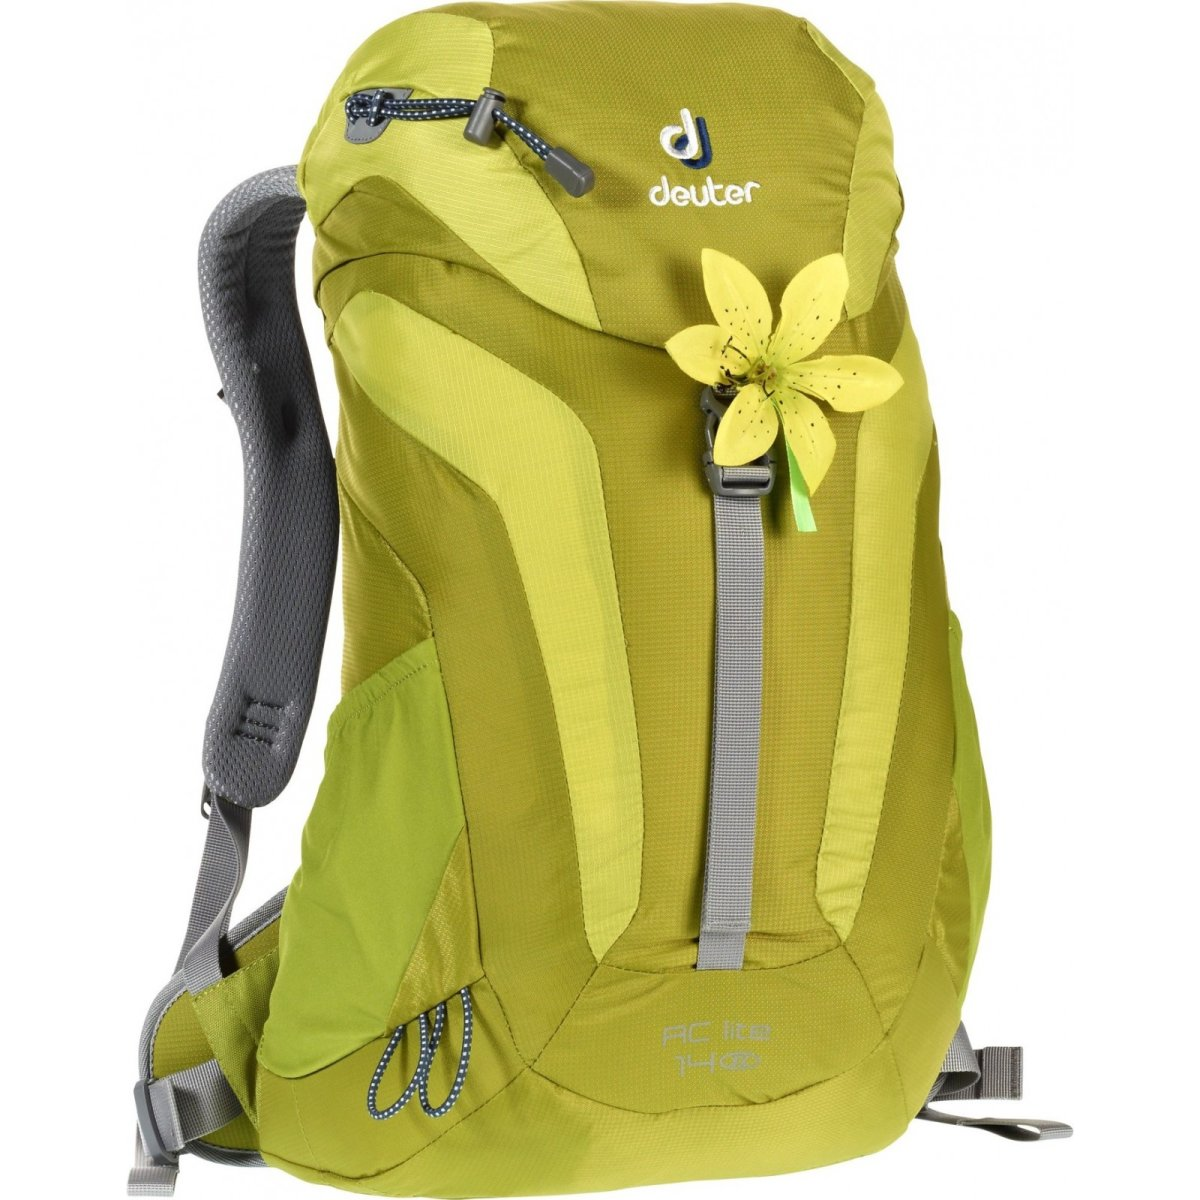 Рюкзак Deuter AC Lite 14 SL moss-apple (2223) 3420016 2223